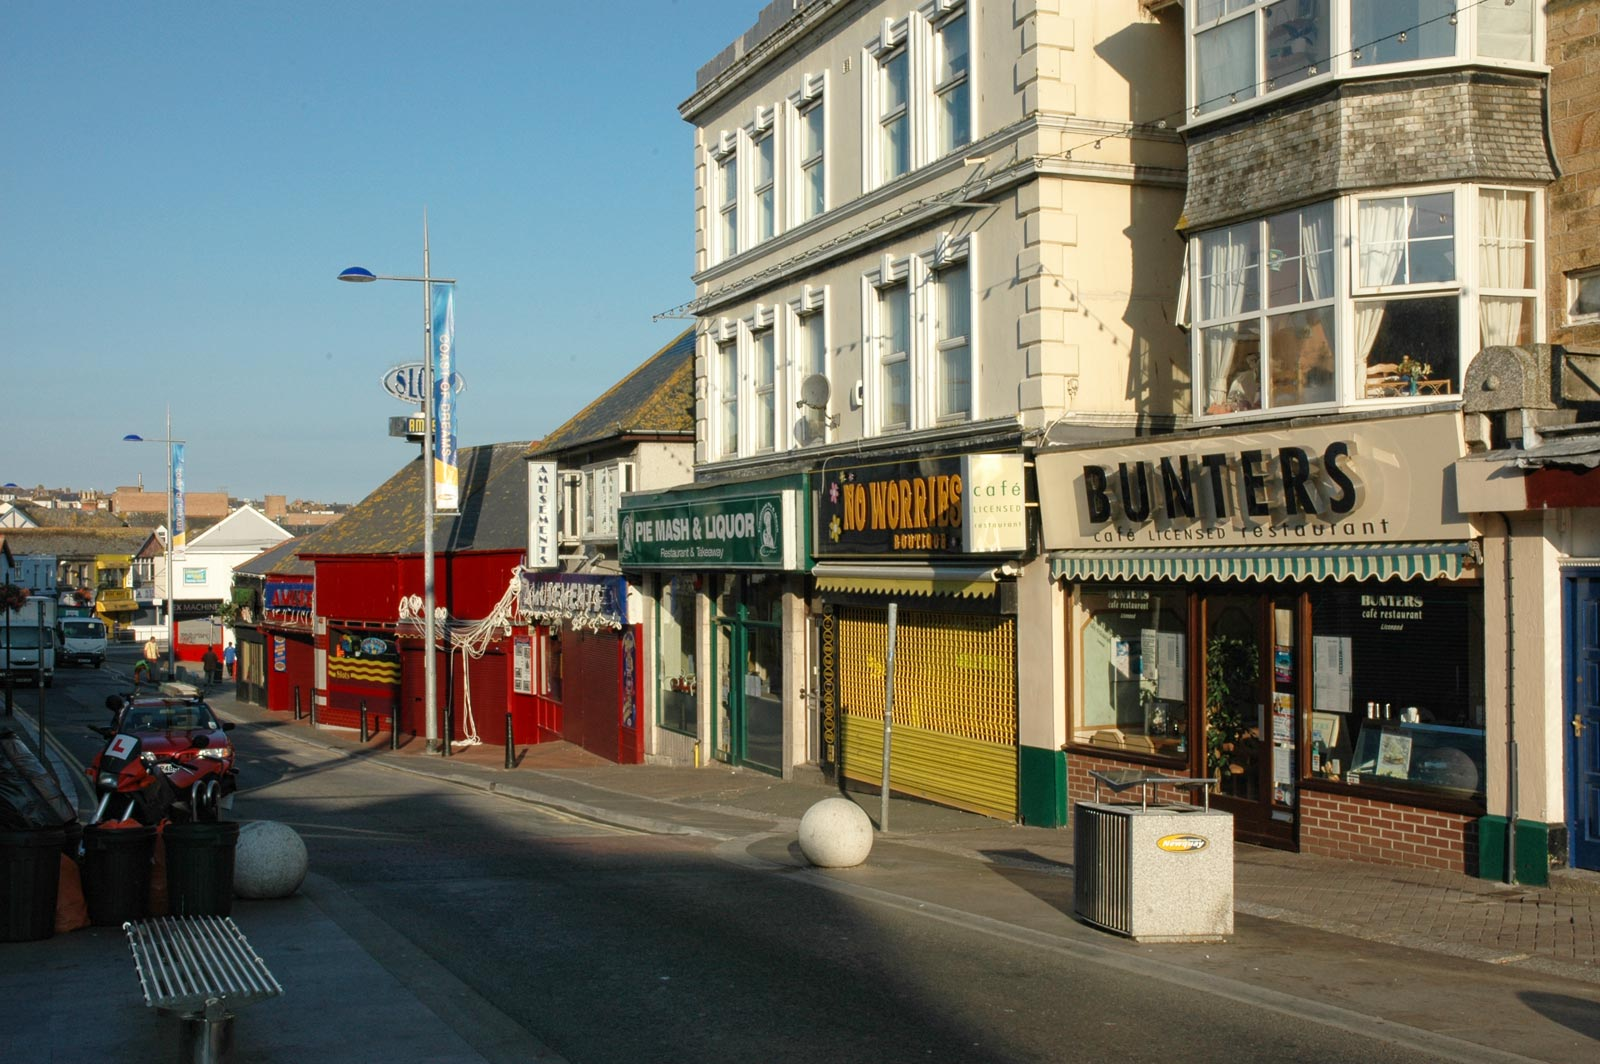 East Street Newquay Cornwall Guide